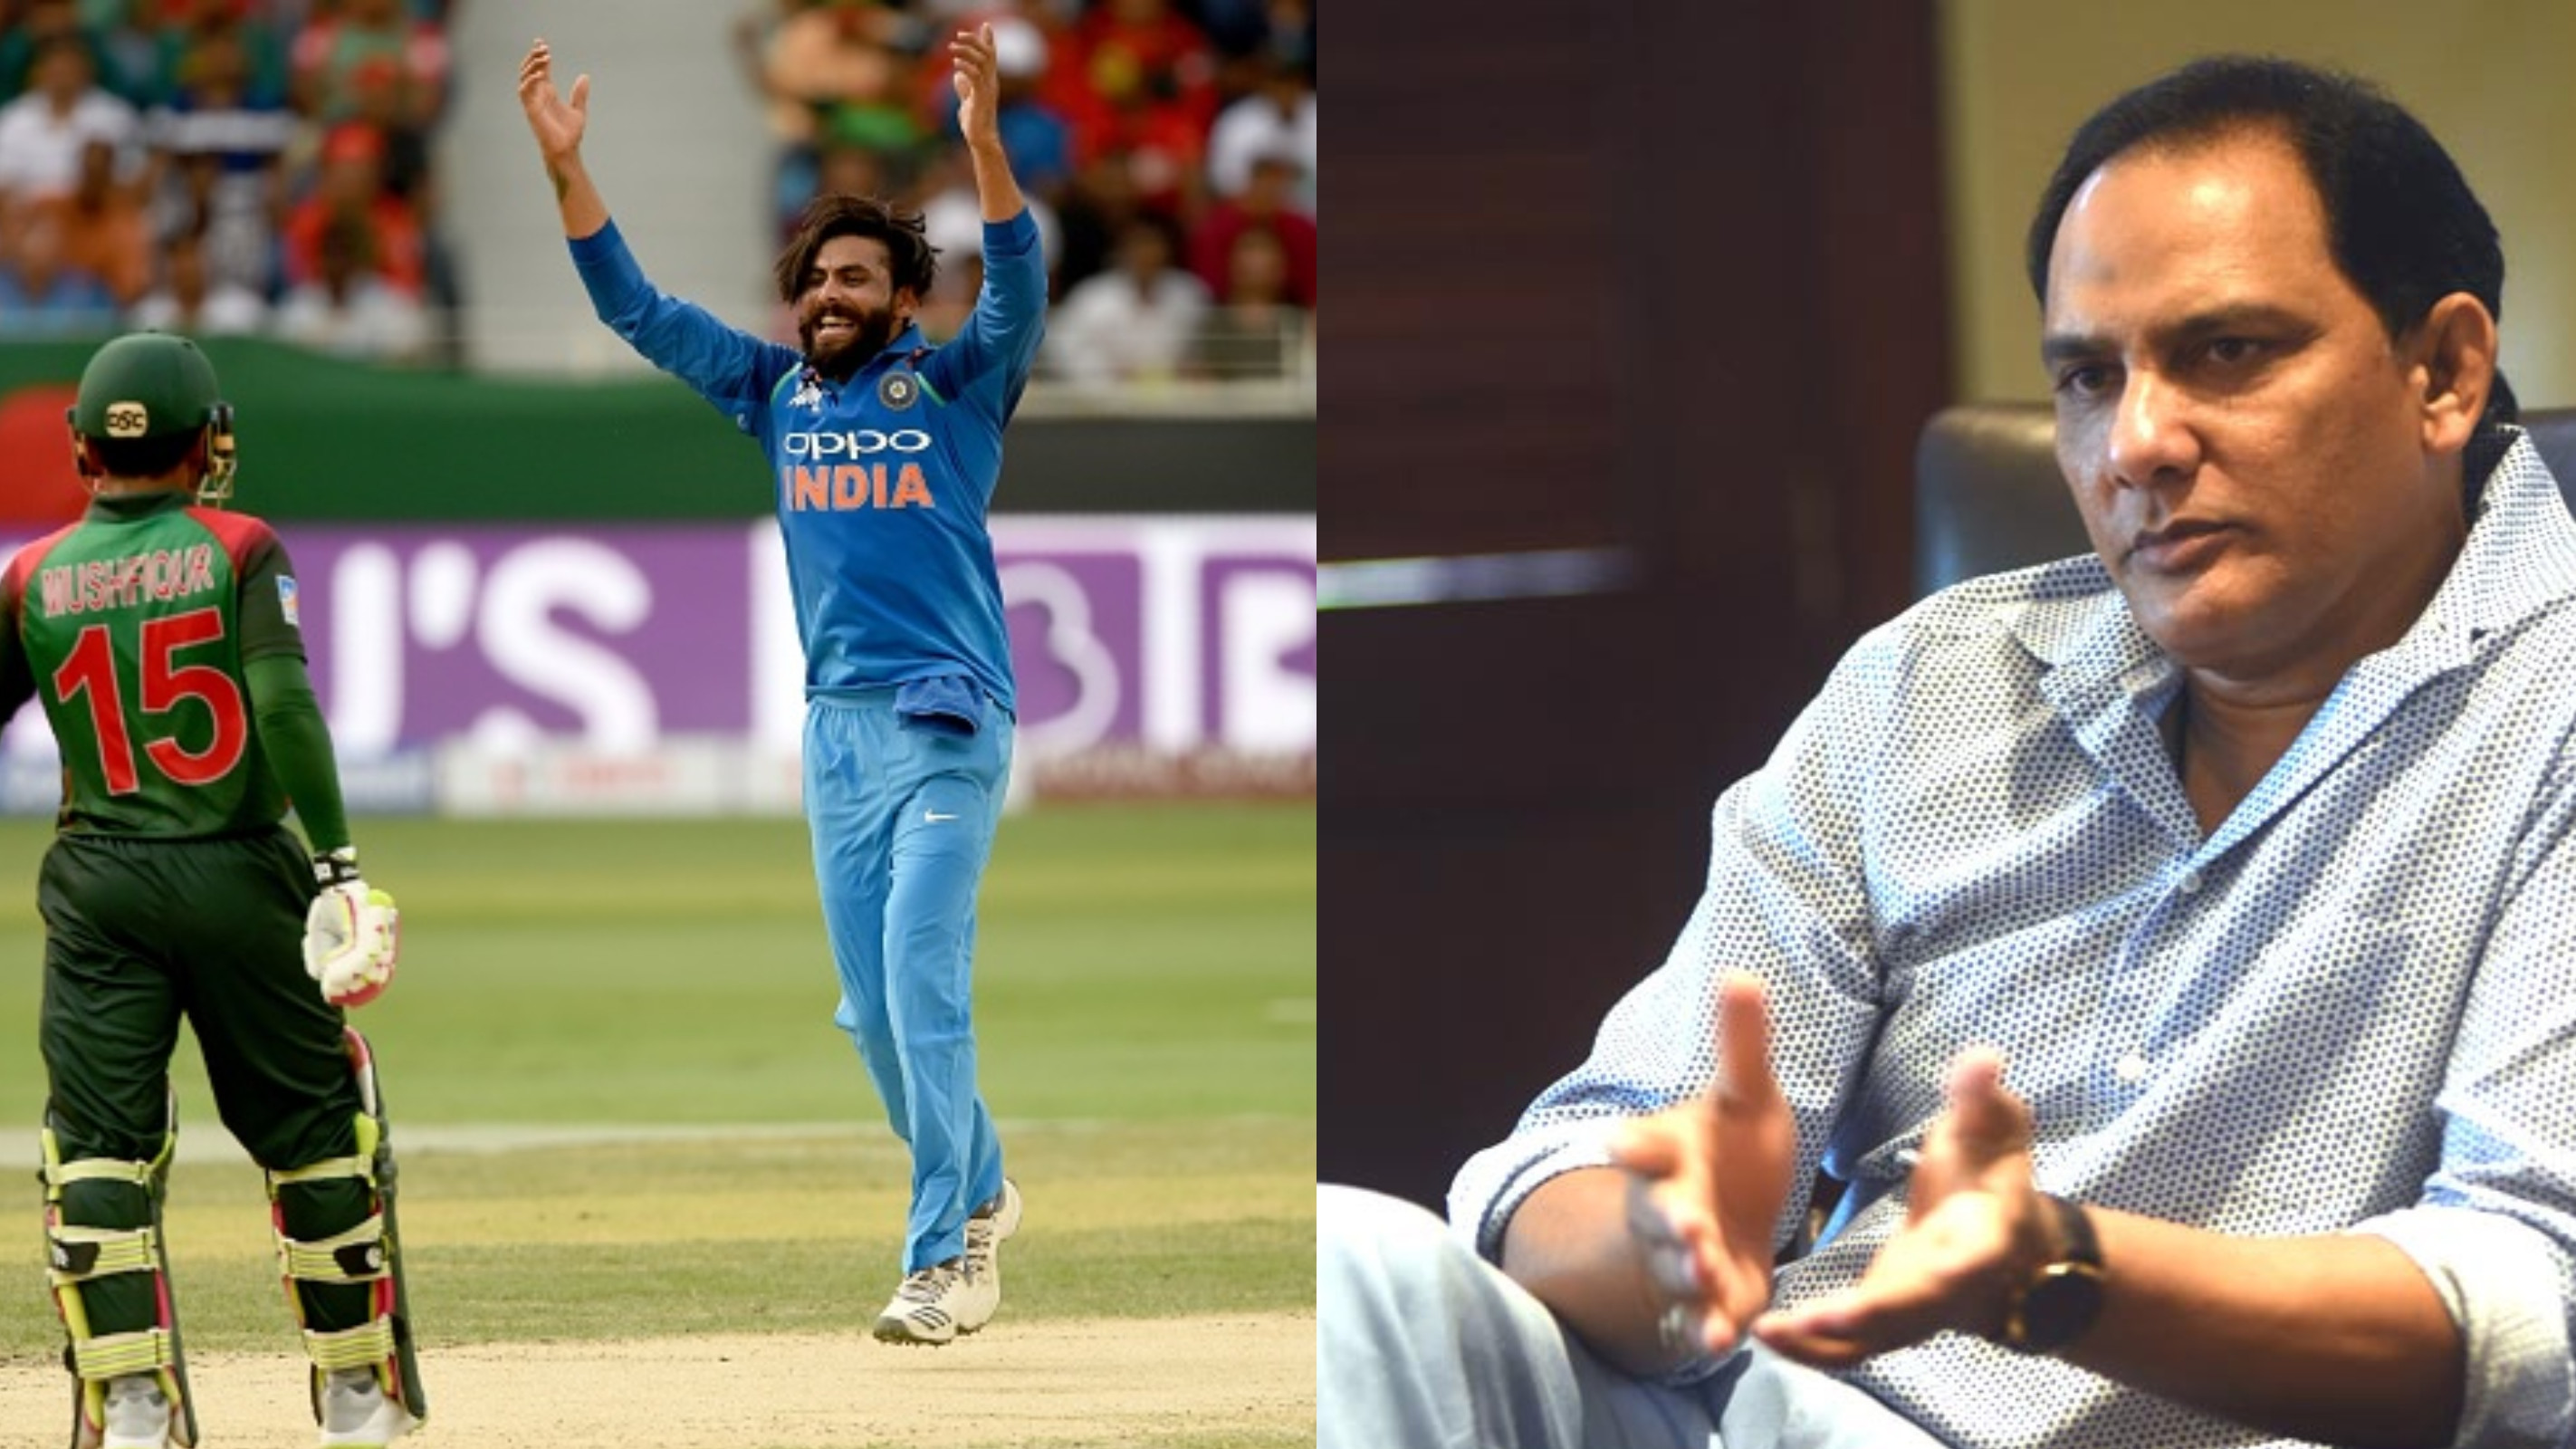 Ravindra Jadeja should not have been dropped, says Mohammad Azharuddin